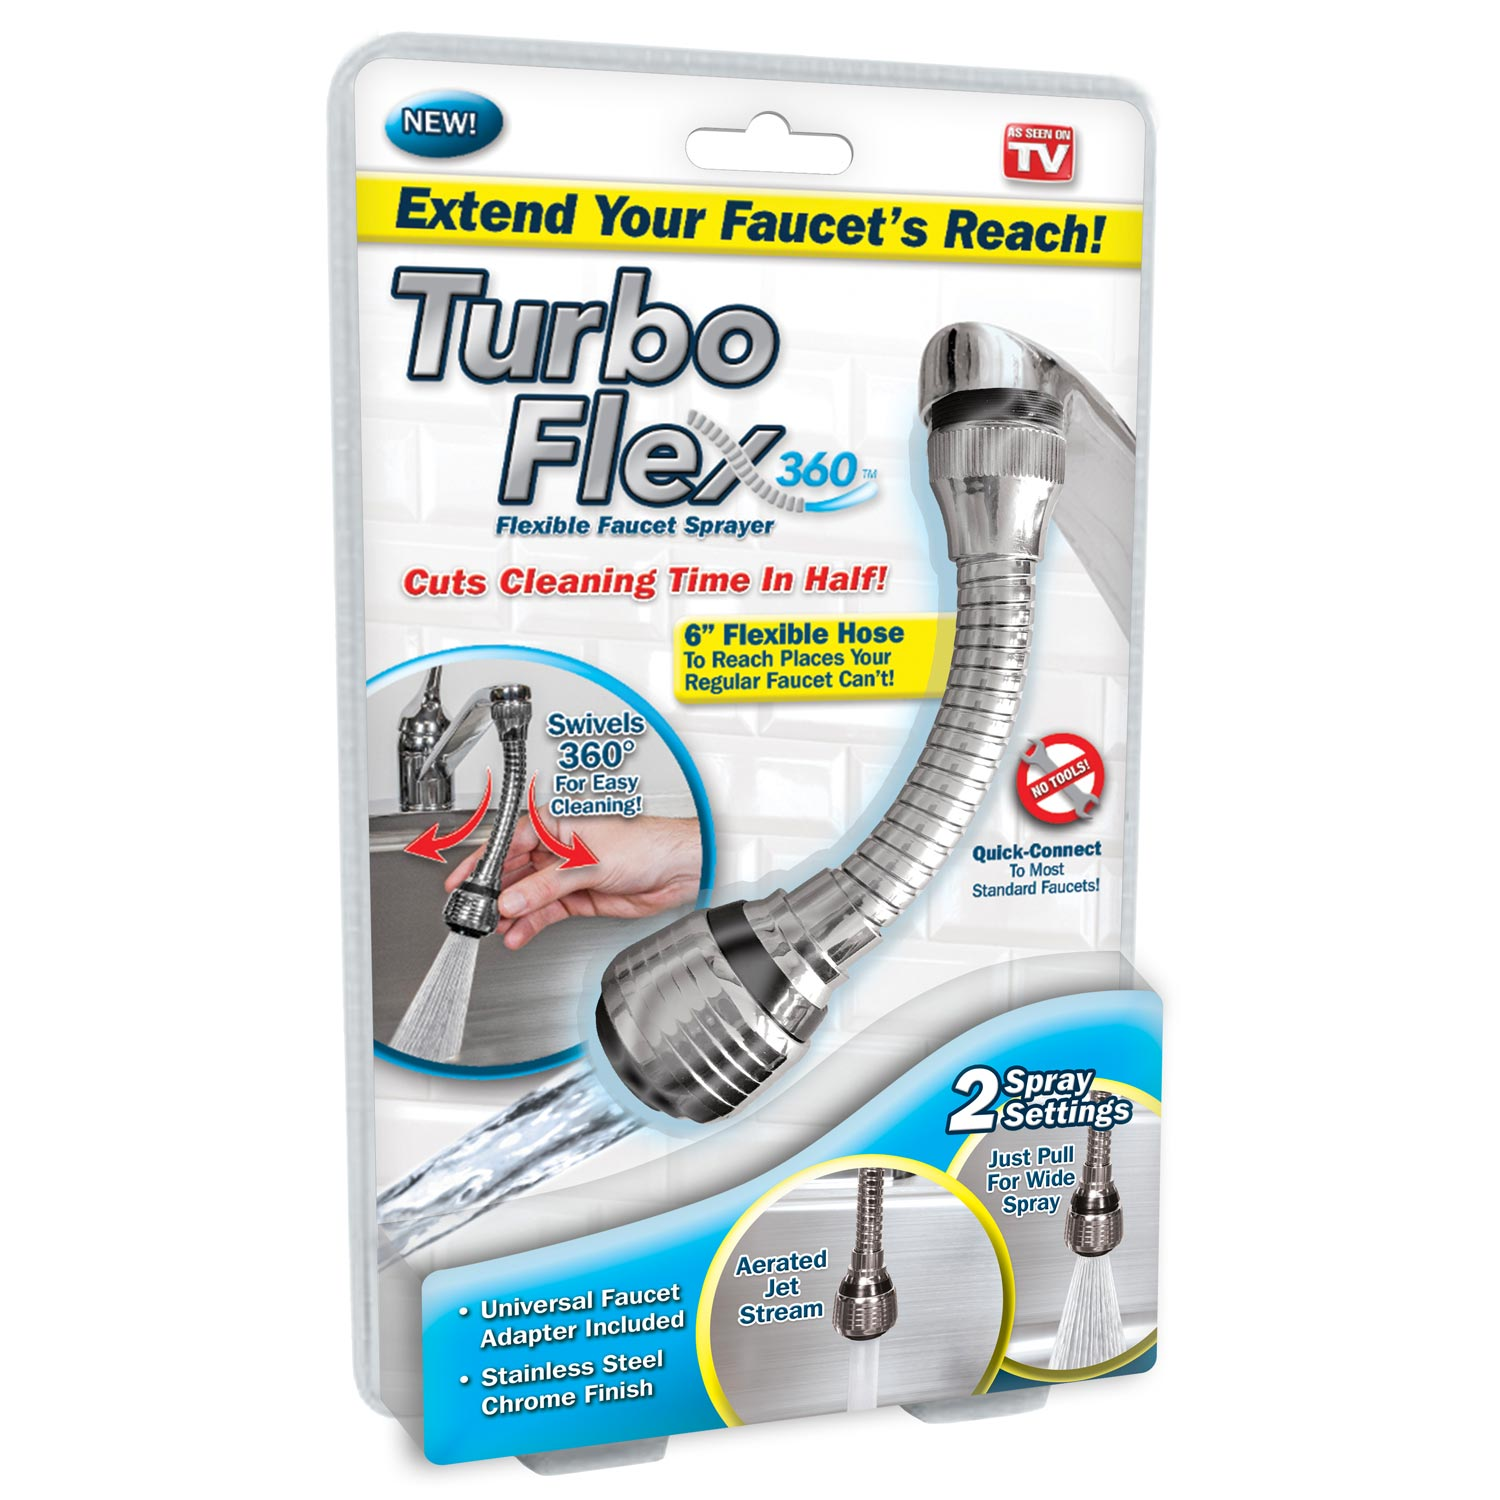 Turbo Flex 360 Instant Hands Free Faucet Swivel Spray Sink Hose ...